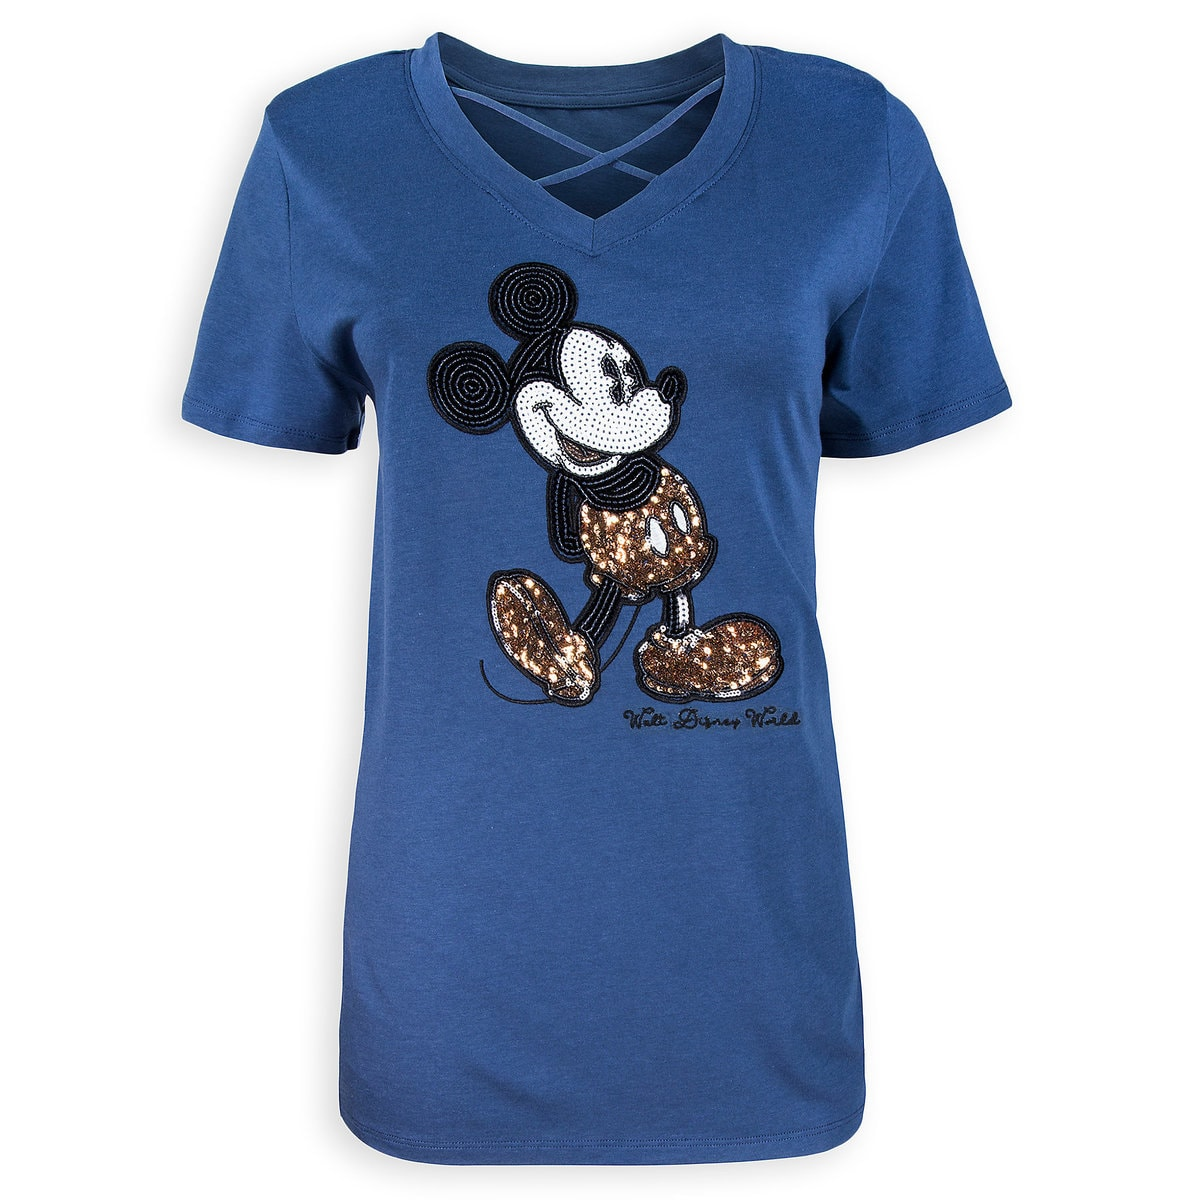 7aa08c4c6 Product Image of Mickey Mouse Sequined Fashion T-Shirt for Women - Walt  Disney World